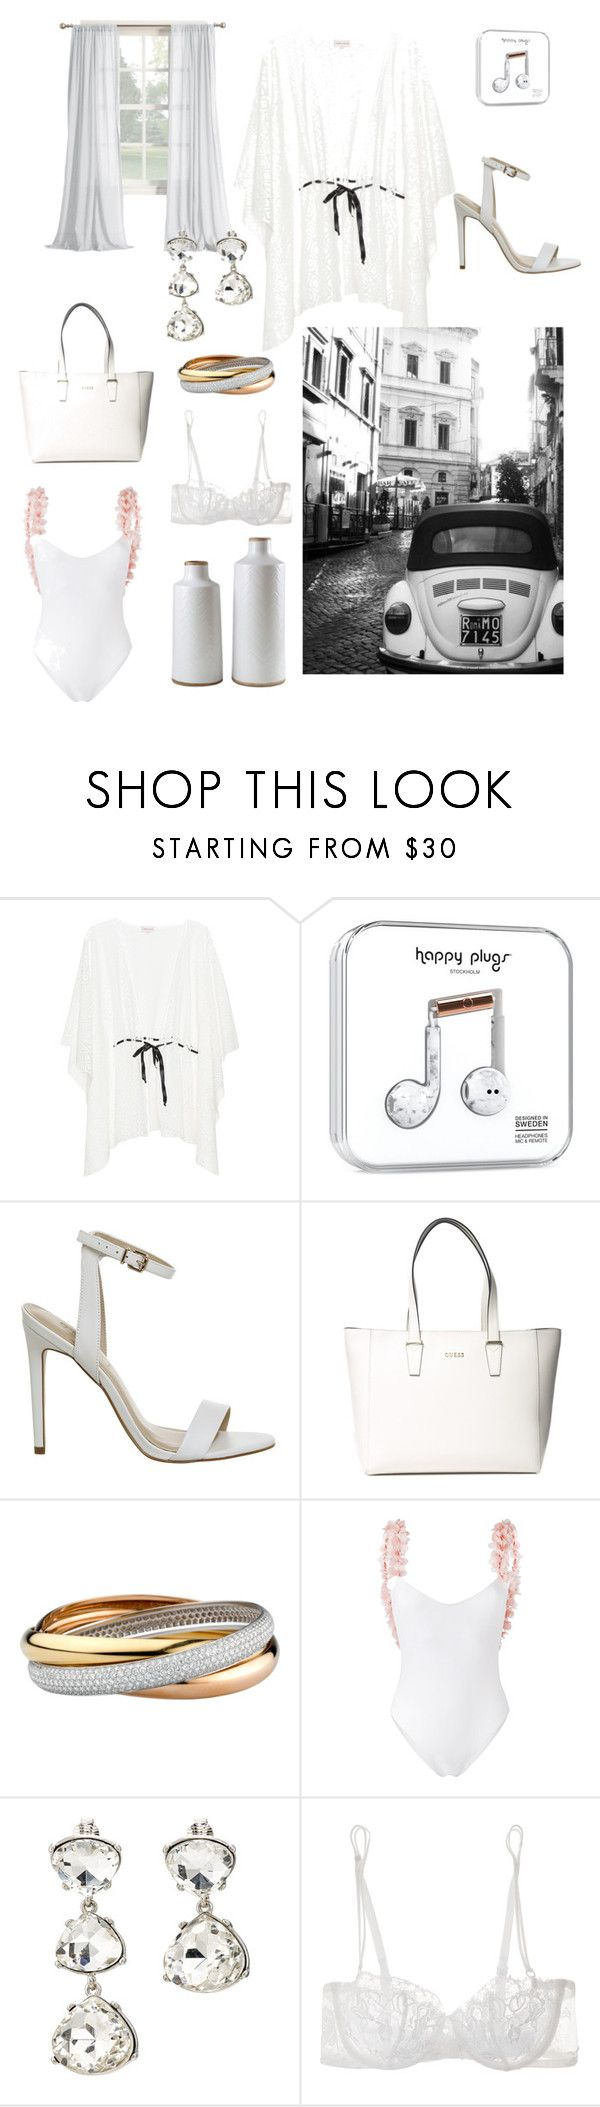 """Senza titolo #166"" by robbys73 ❤ liked on Polyvore featuring GUESS, La Revêche, Kenneth Jay Lane, La Perla and Signature Design by Ashley"